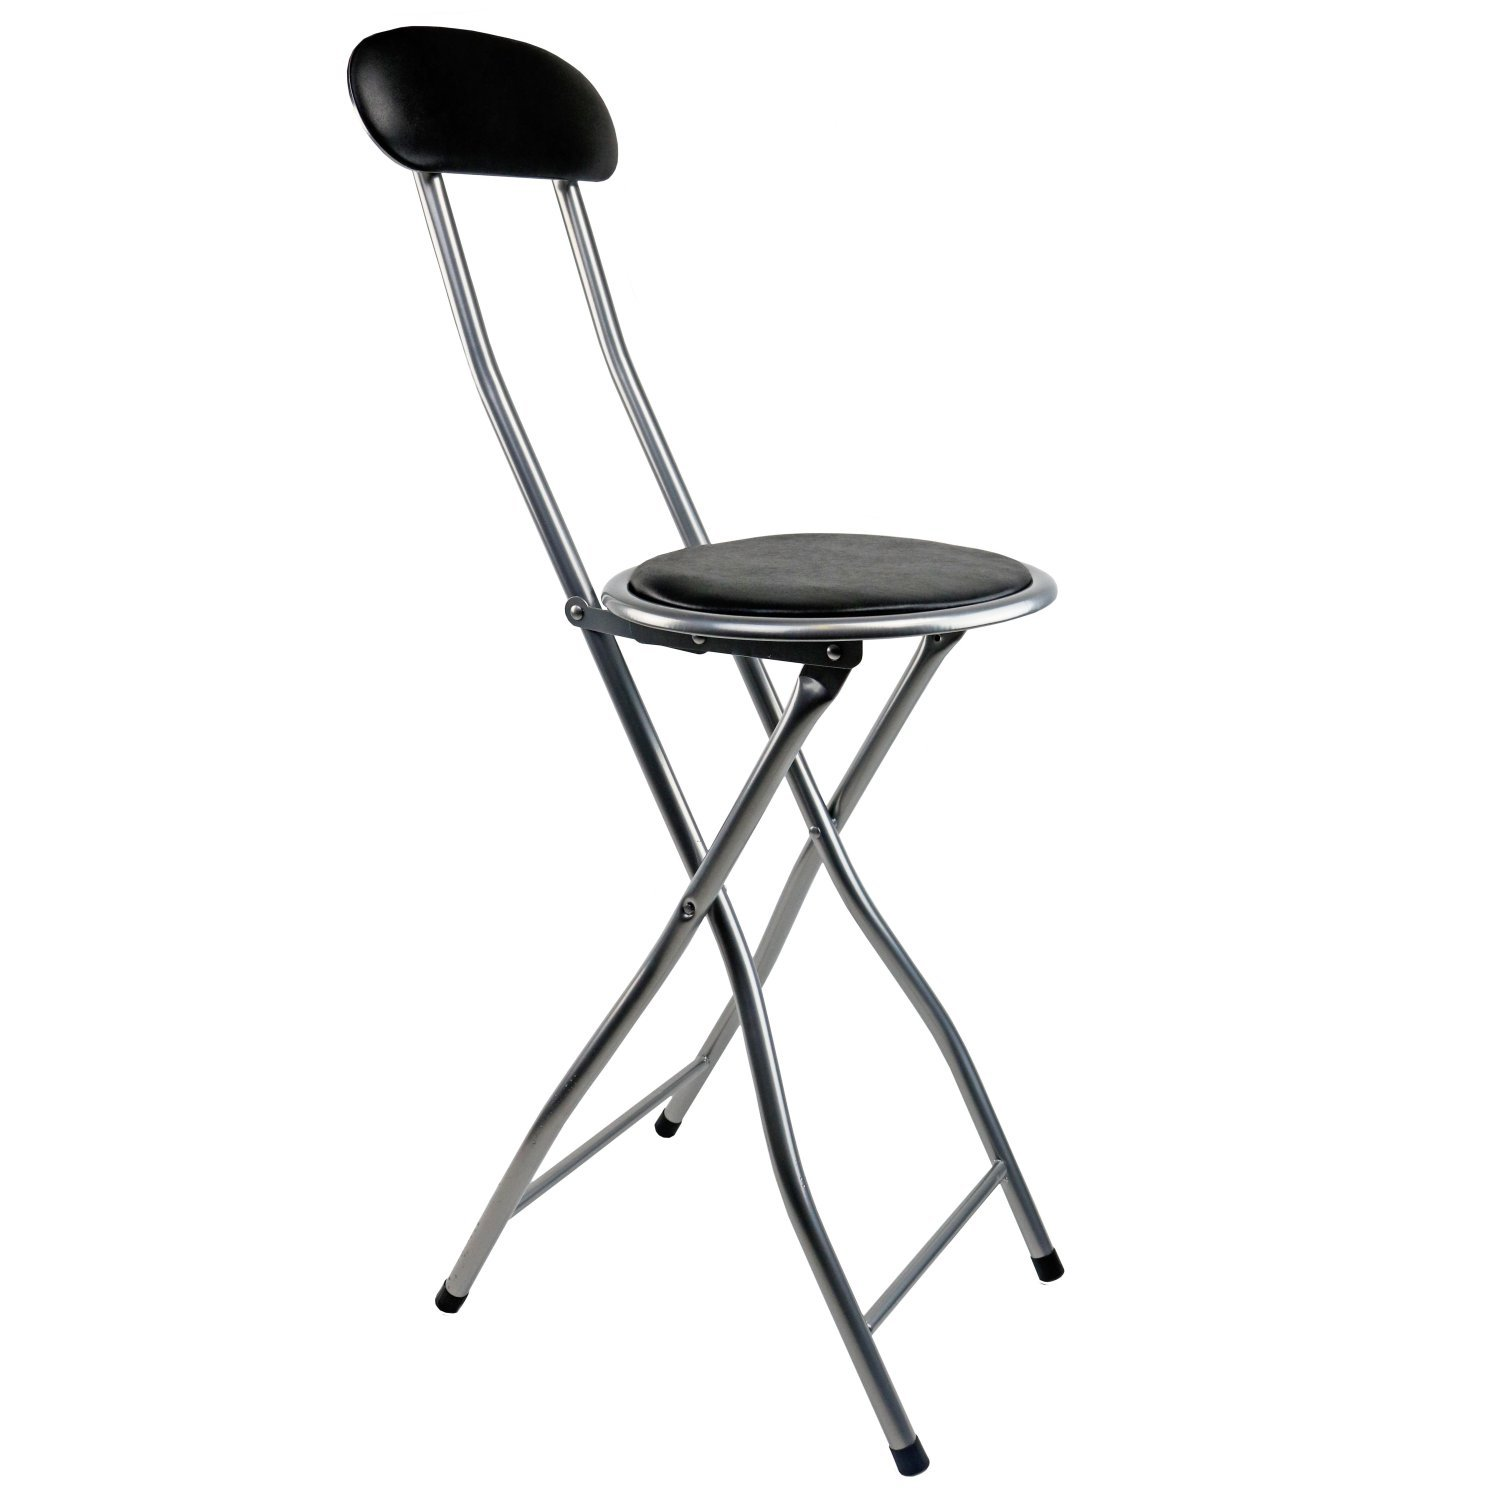 NEW Black Padded Folding High Chair Breakfast Kitchen Bar